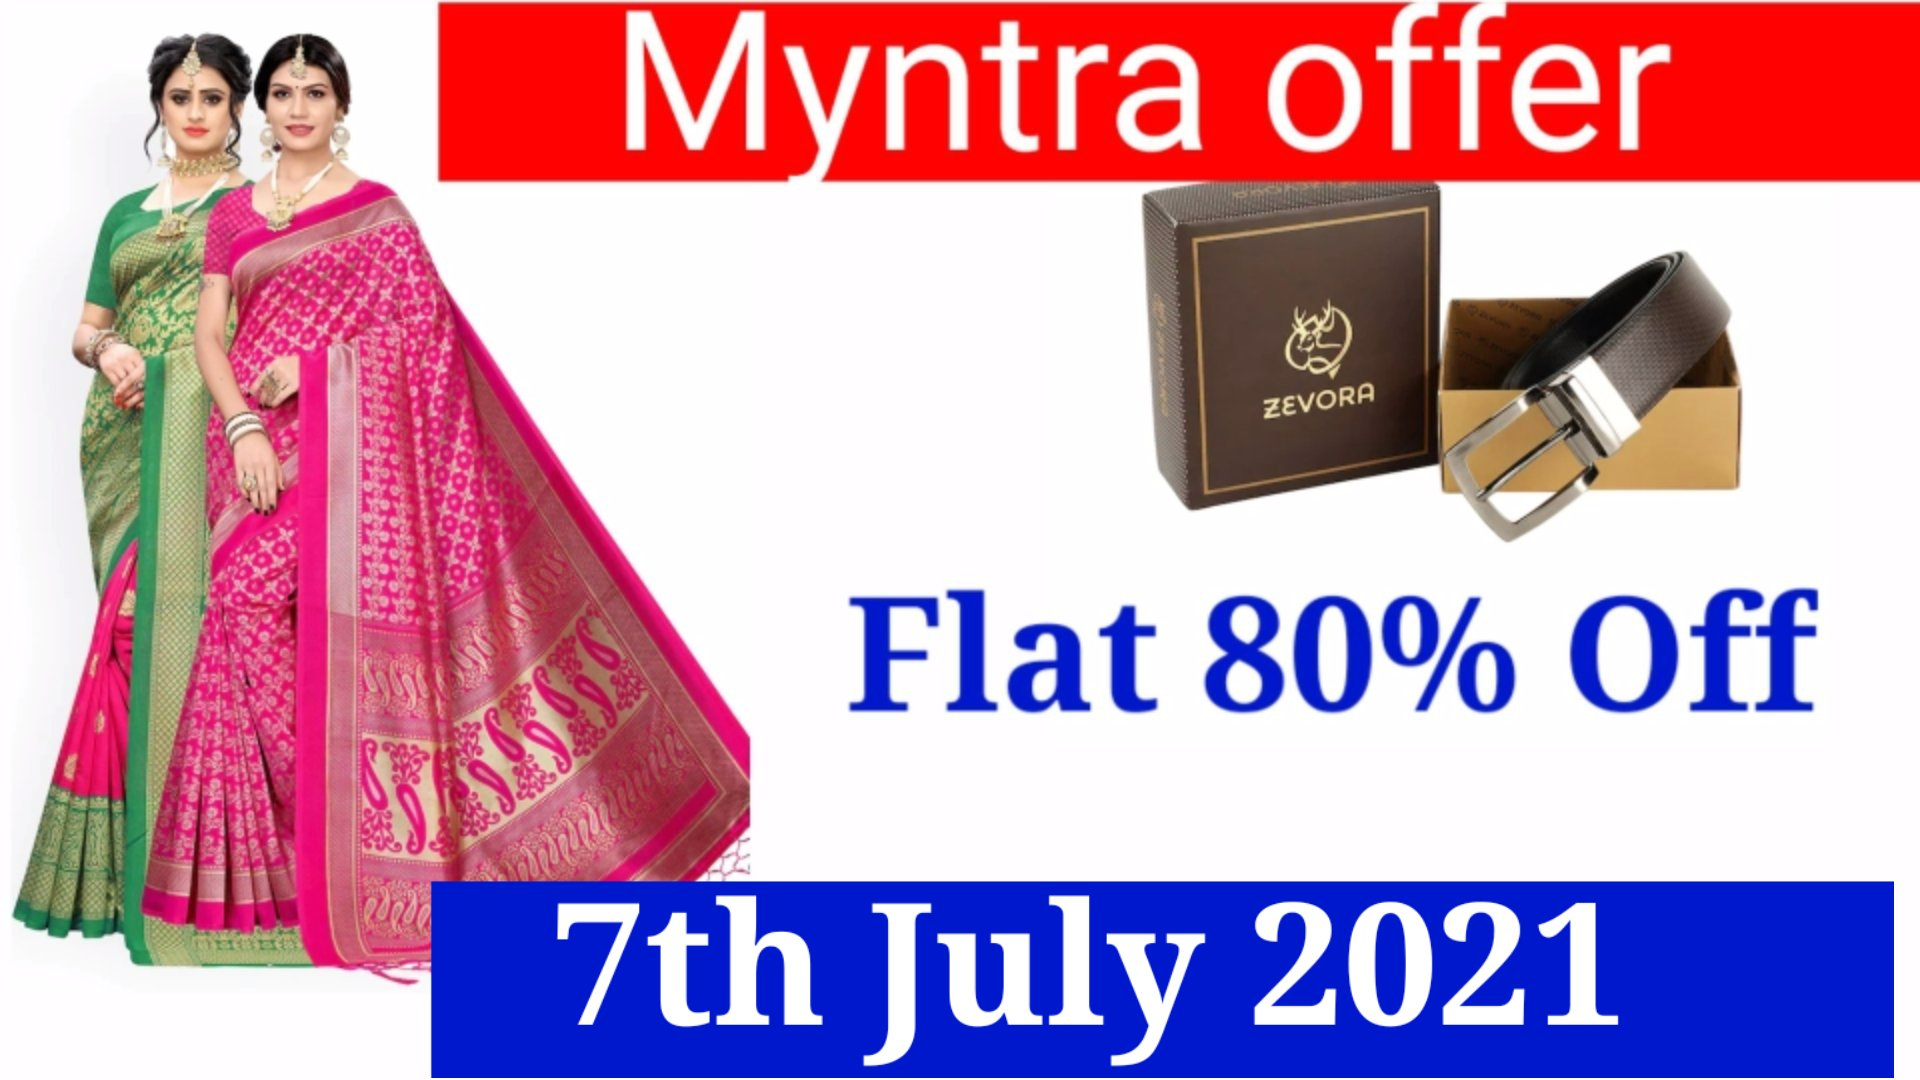 Today's offer and discount updates on 7th July 2021